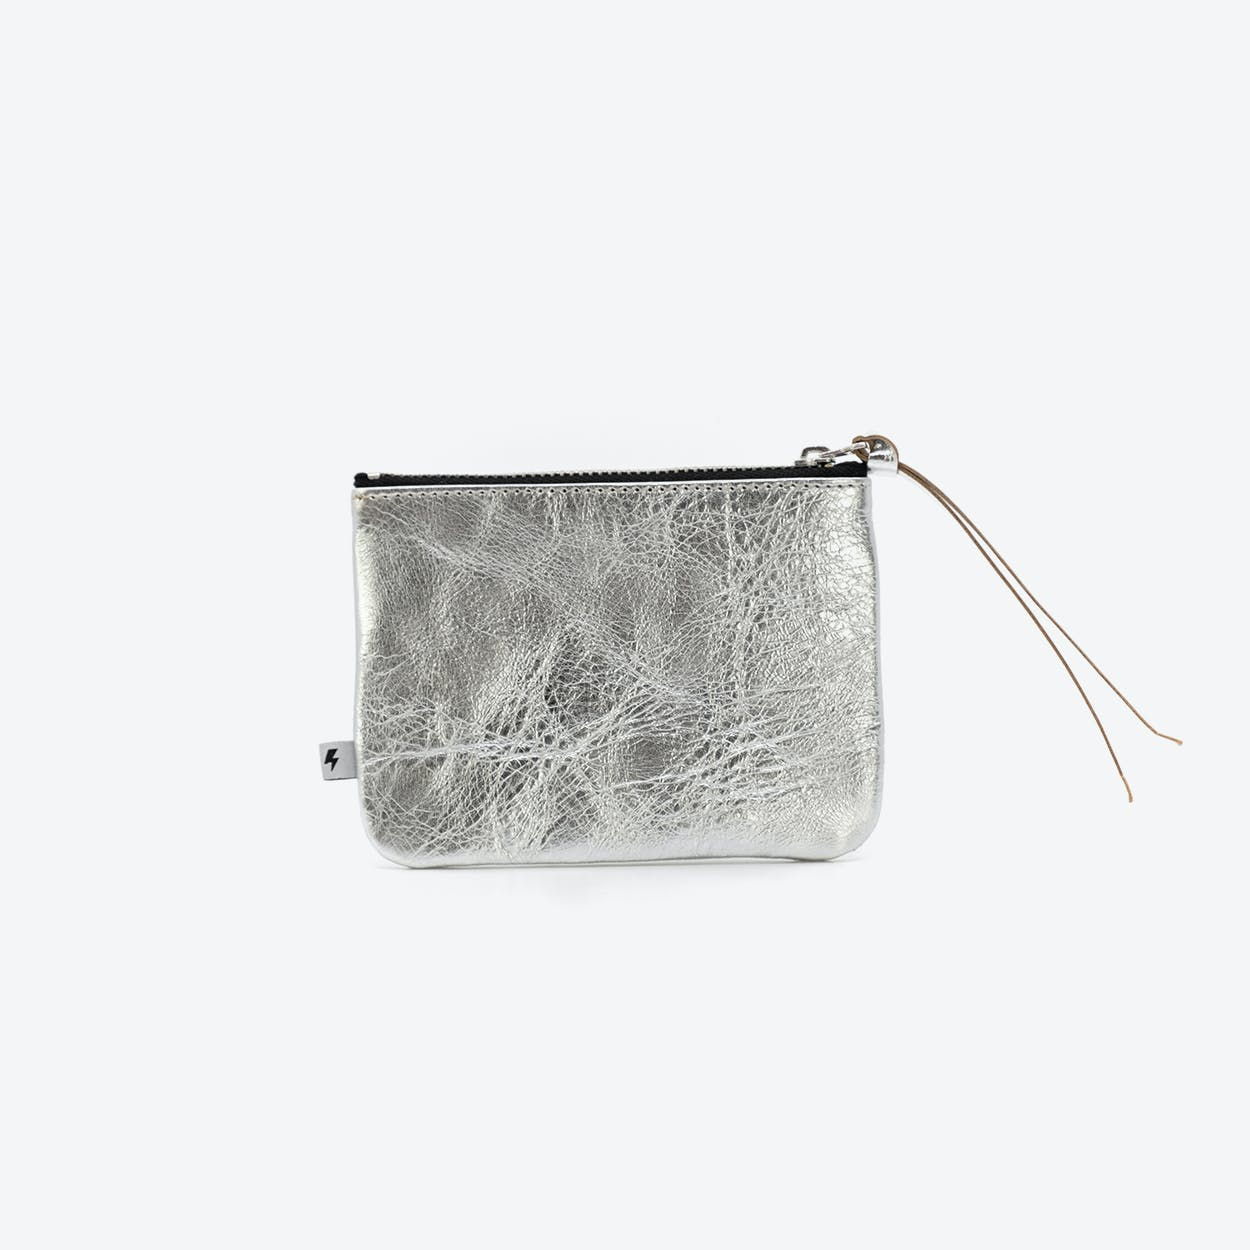 MAX Small Clutch in Silver